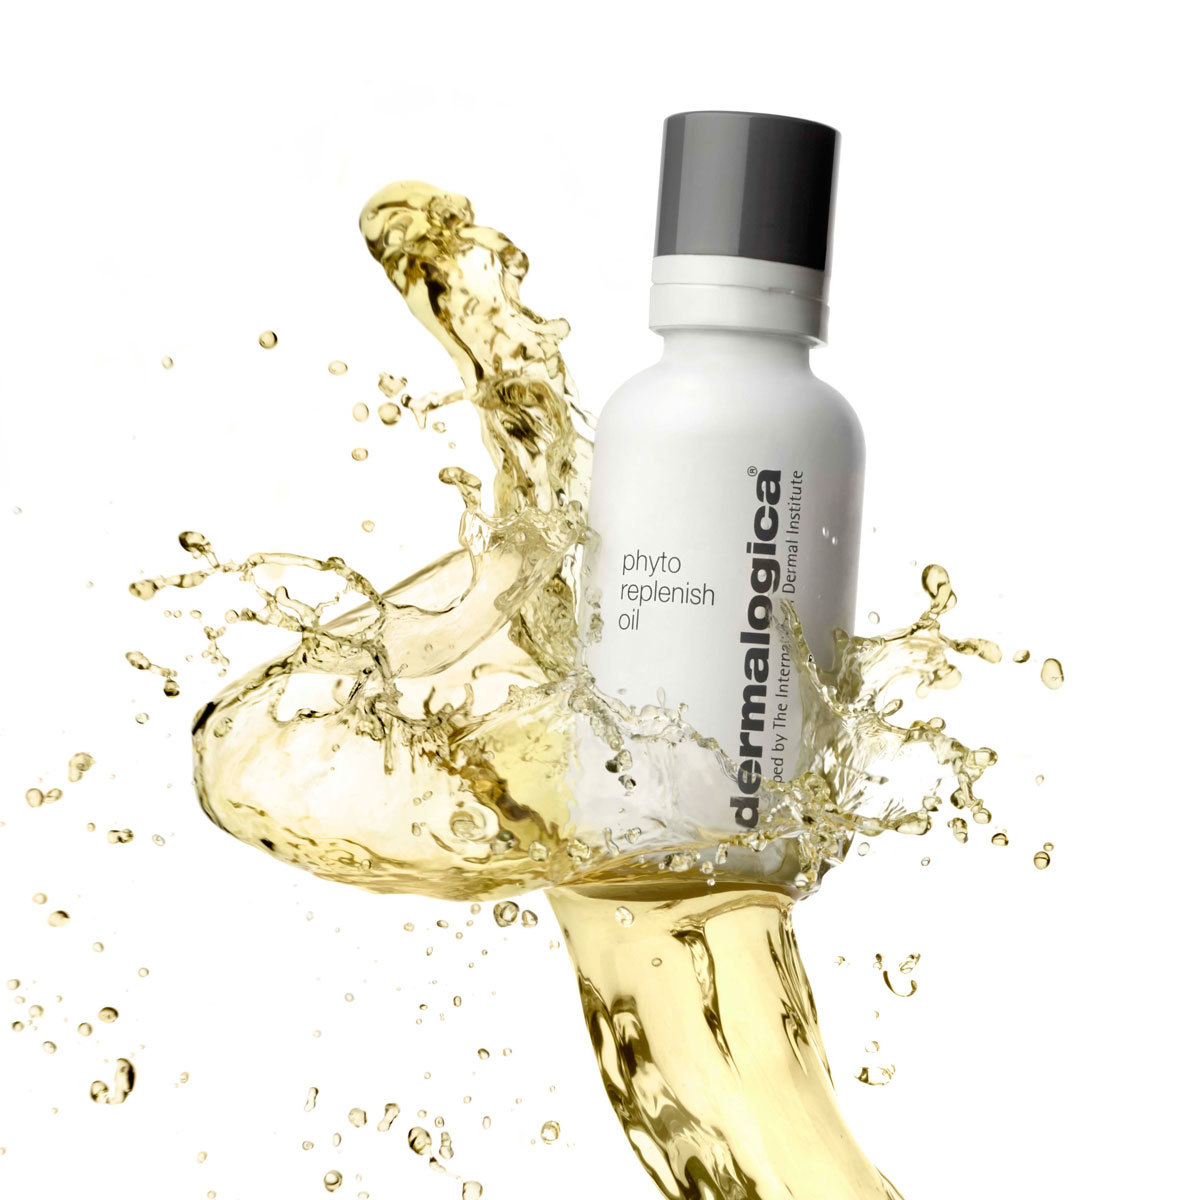 Phyto Reblendish Oil de Dermalogica.